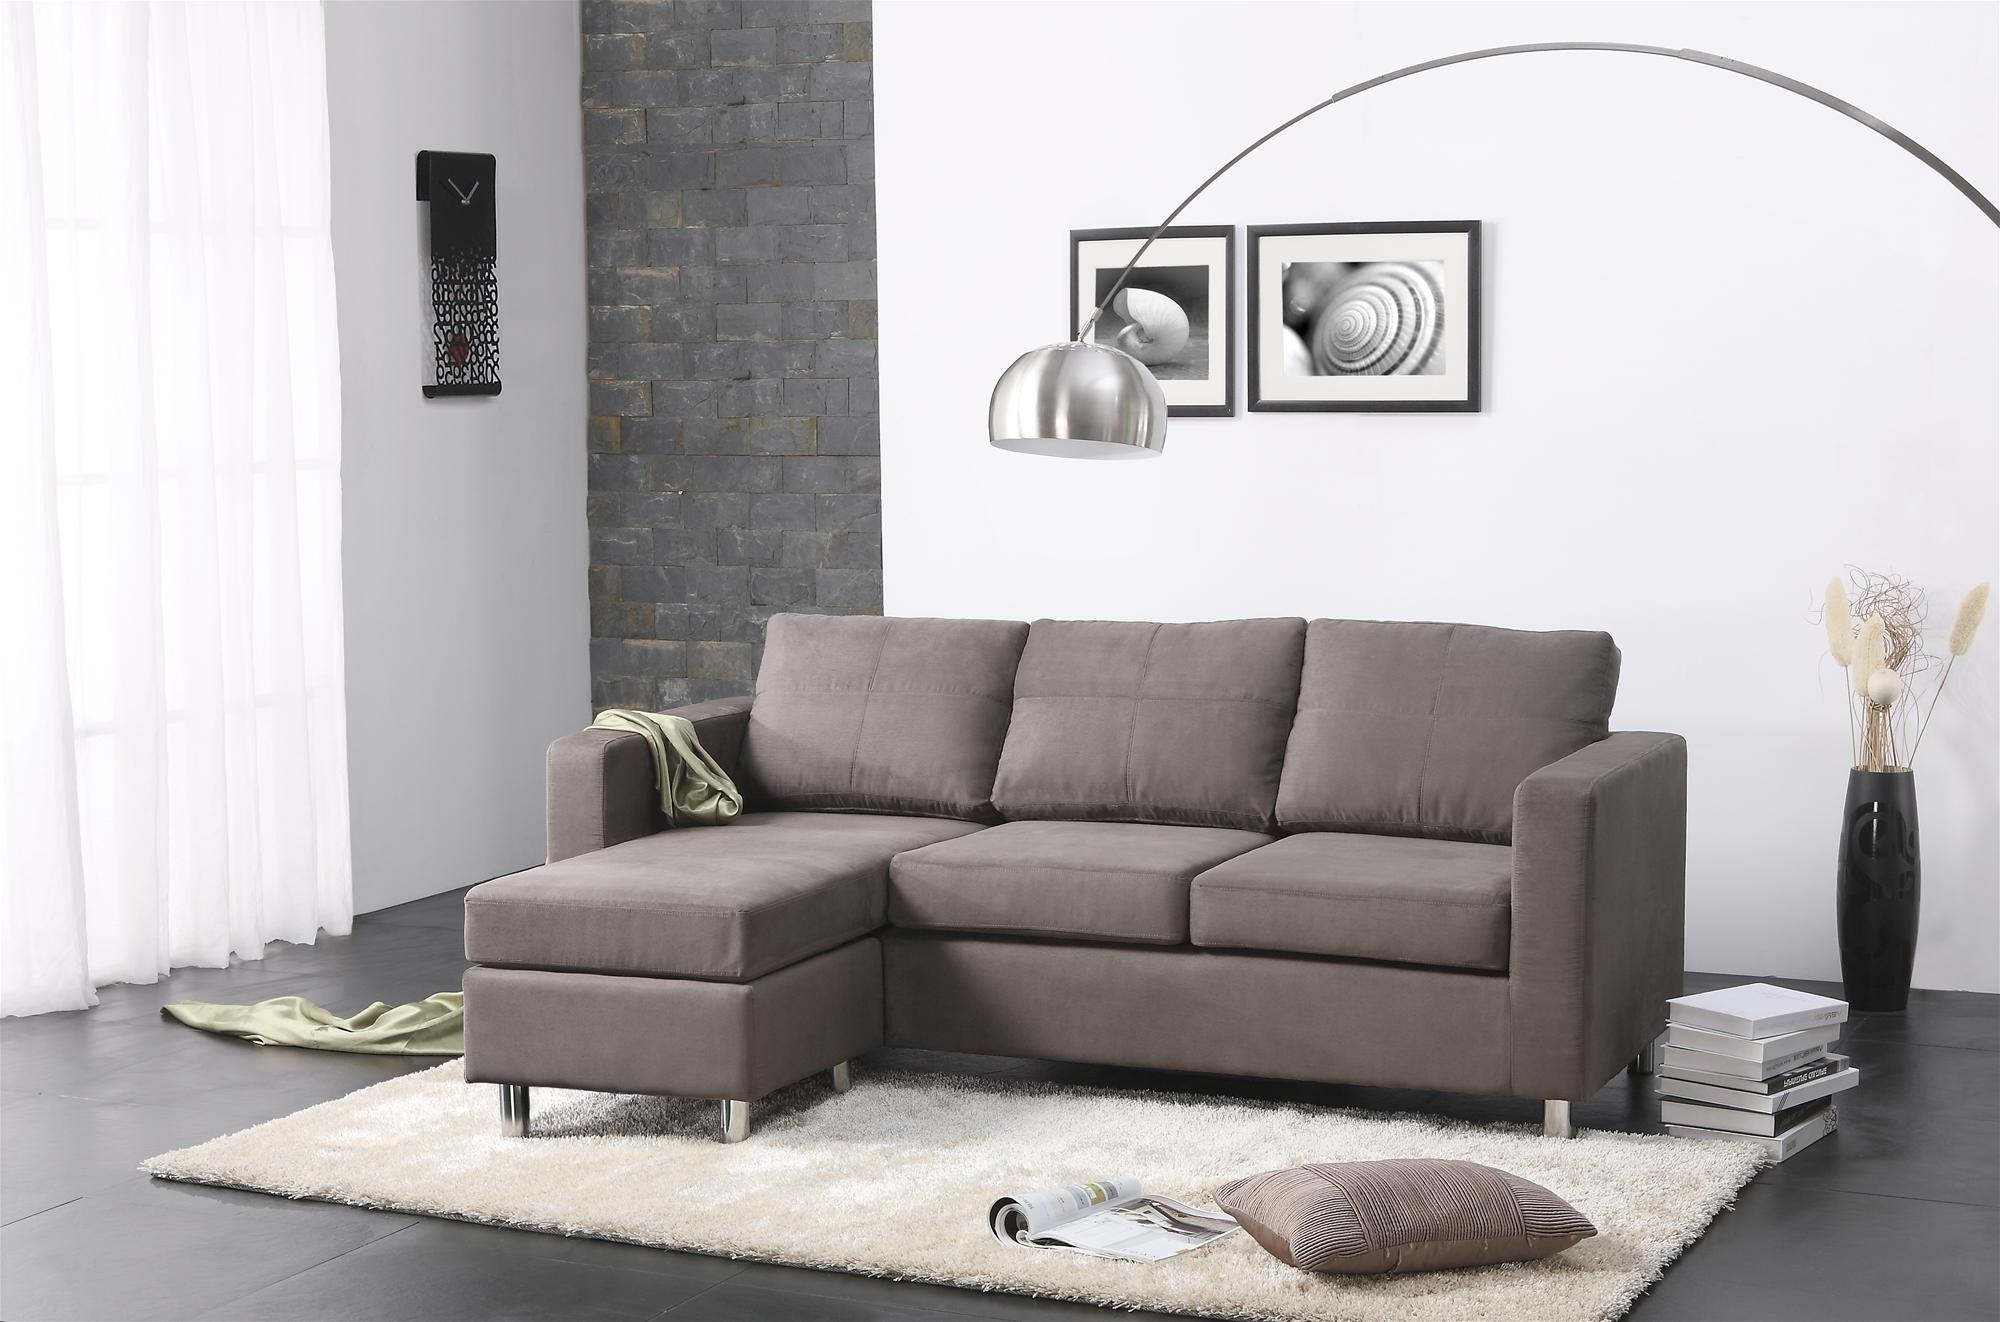 2019 Sectional Sofas For Small Rooms Within Fancy Sectional Sofa For Small Spaces 46 For Contemporary Sofa (View 13 of 20)